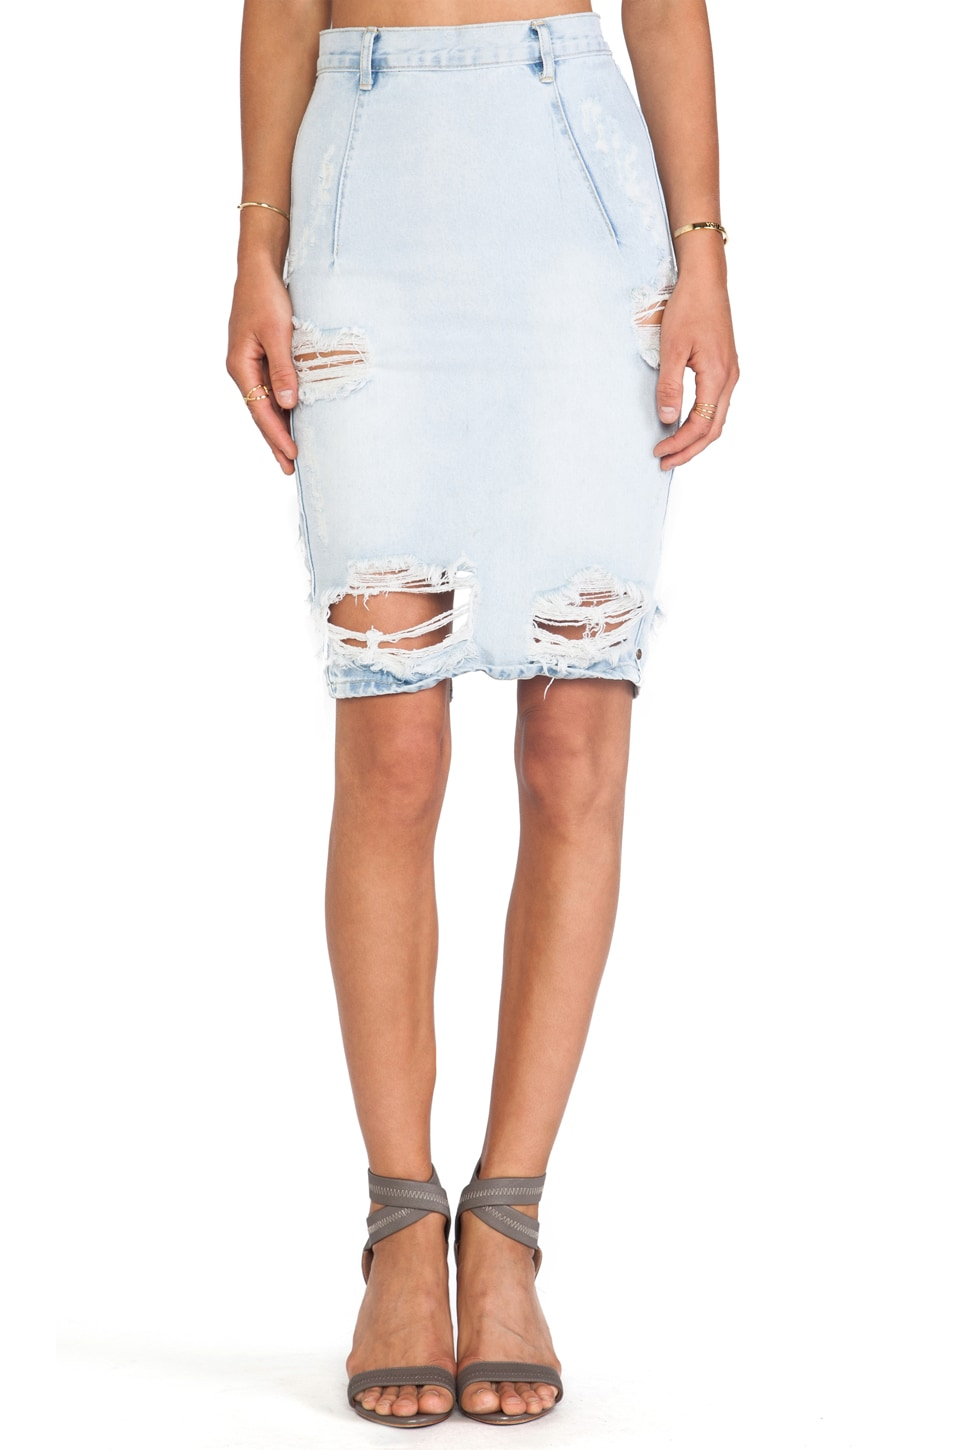 One Teaspoon Free Love Denim Pencil Skirt in Brando